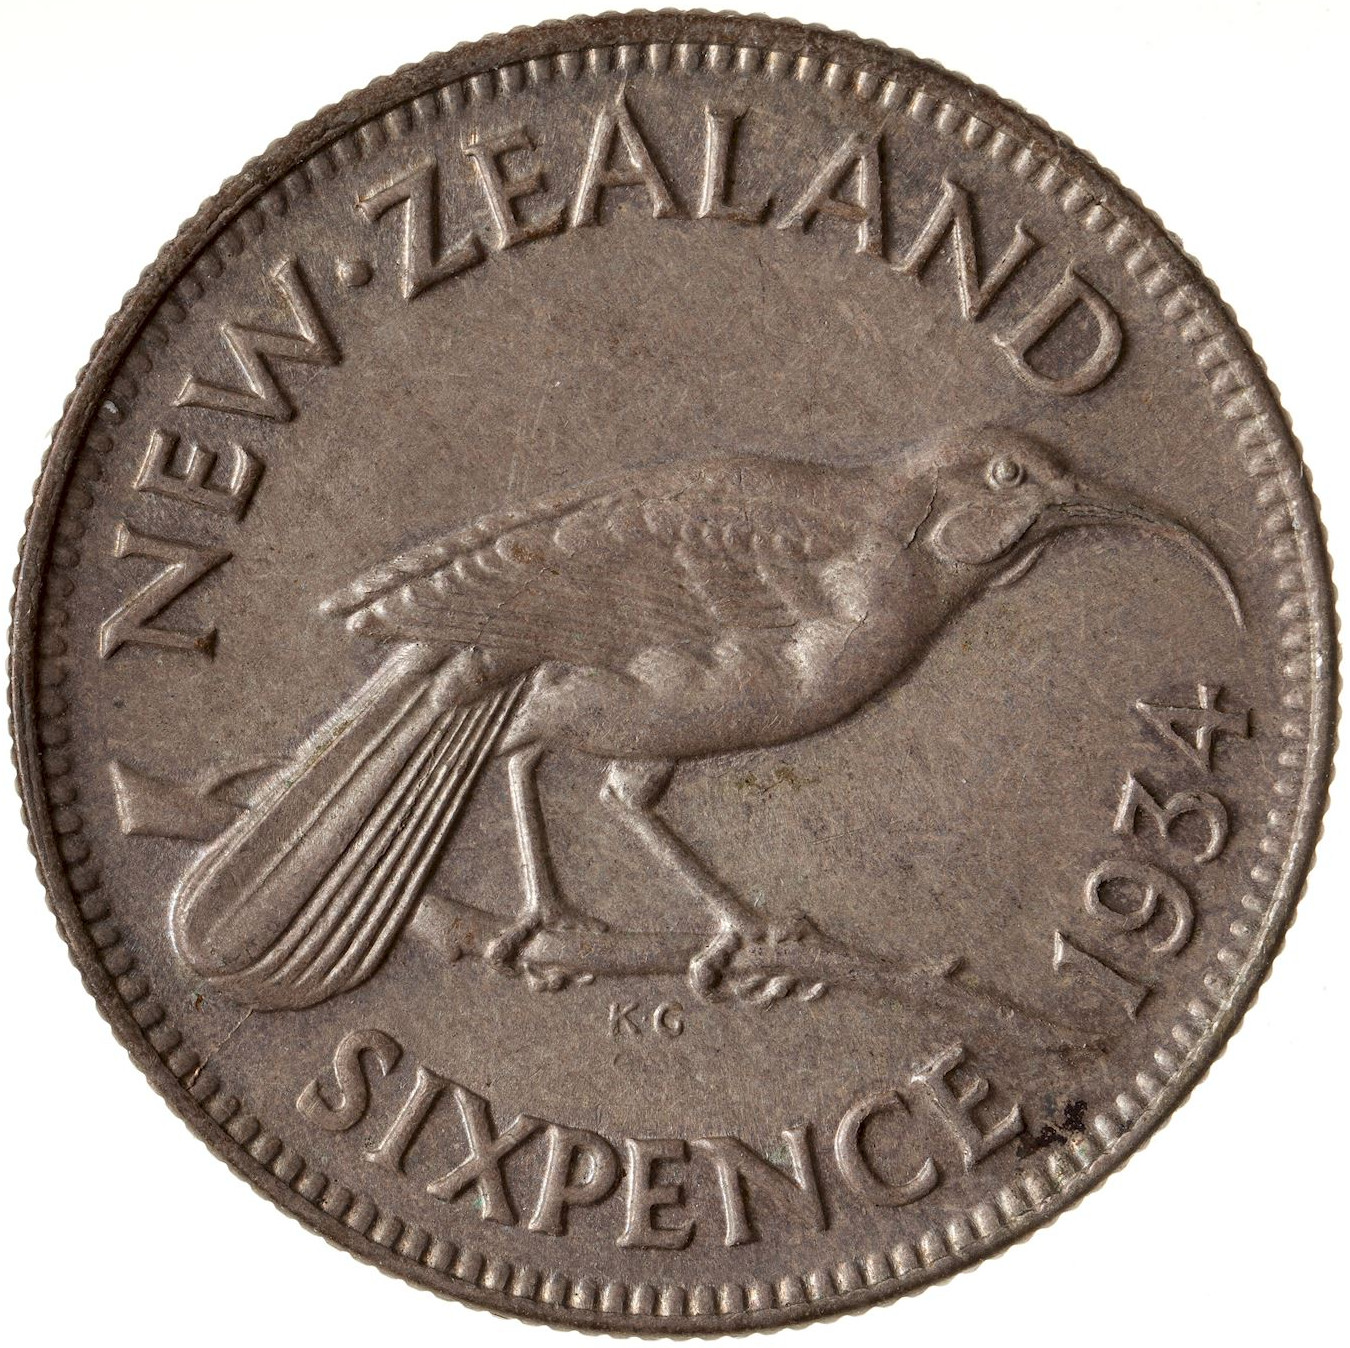 Sixpence 1934: Photo Coin - 6 Pence, New Zealand, 1934